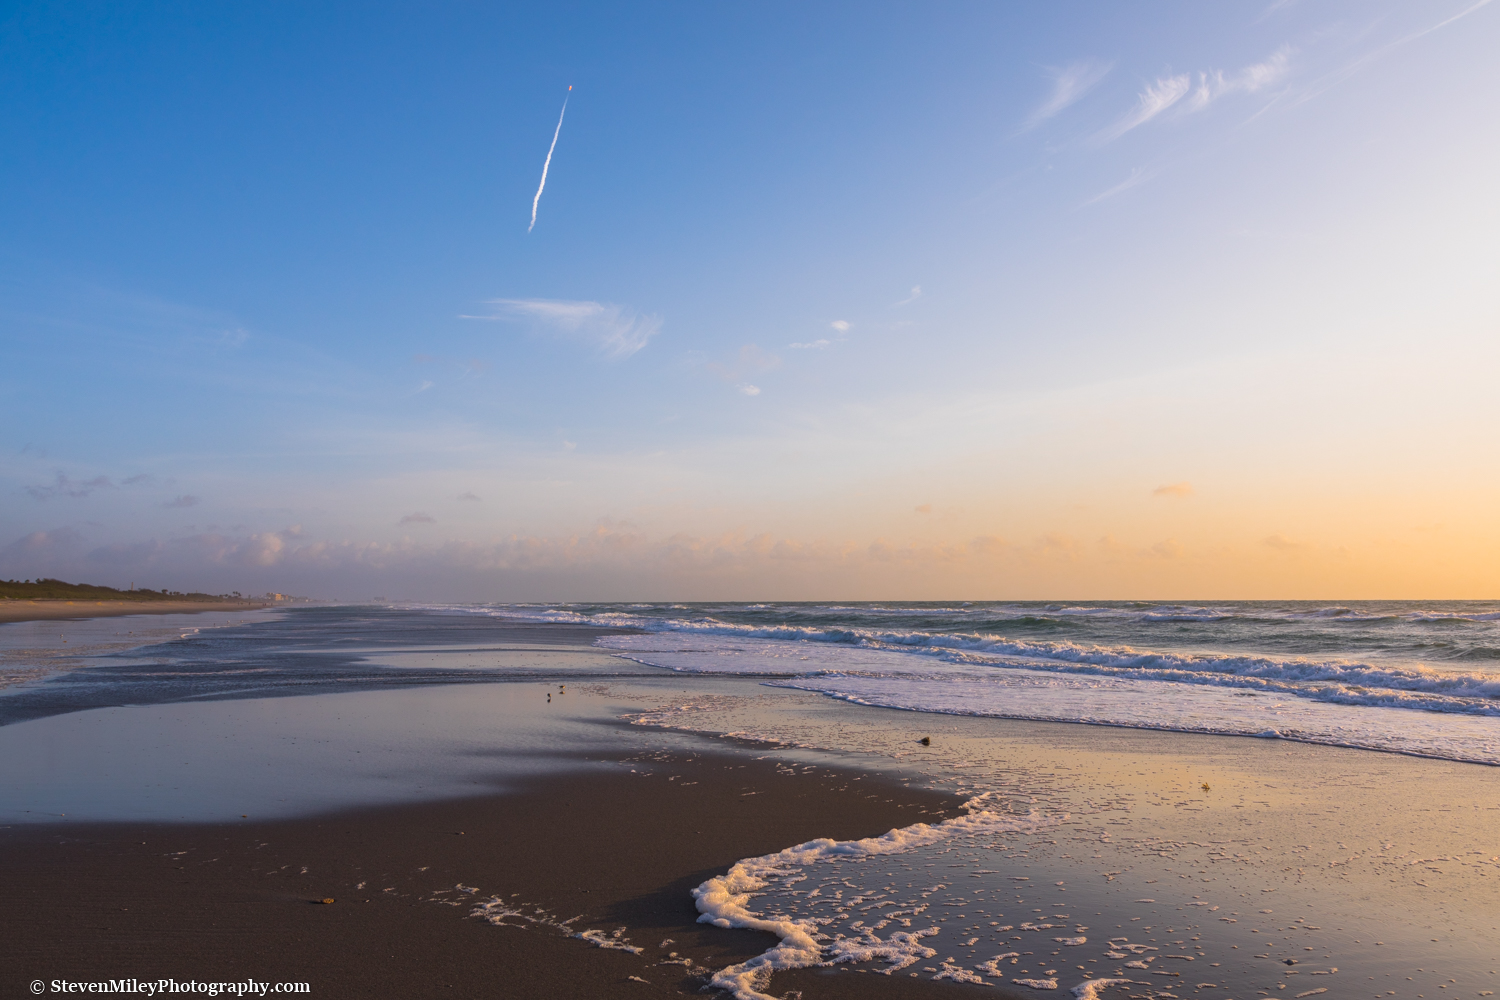 A SpaceX Falcon 9 rocket shoots into space above a lonely section of beach near Patrick Air Force Base.